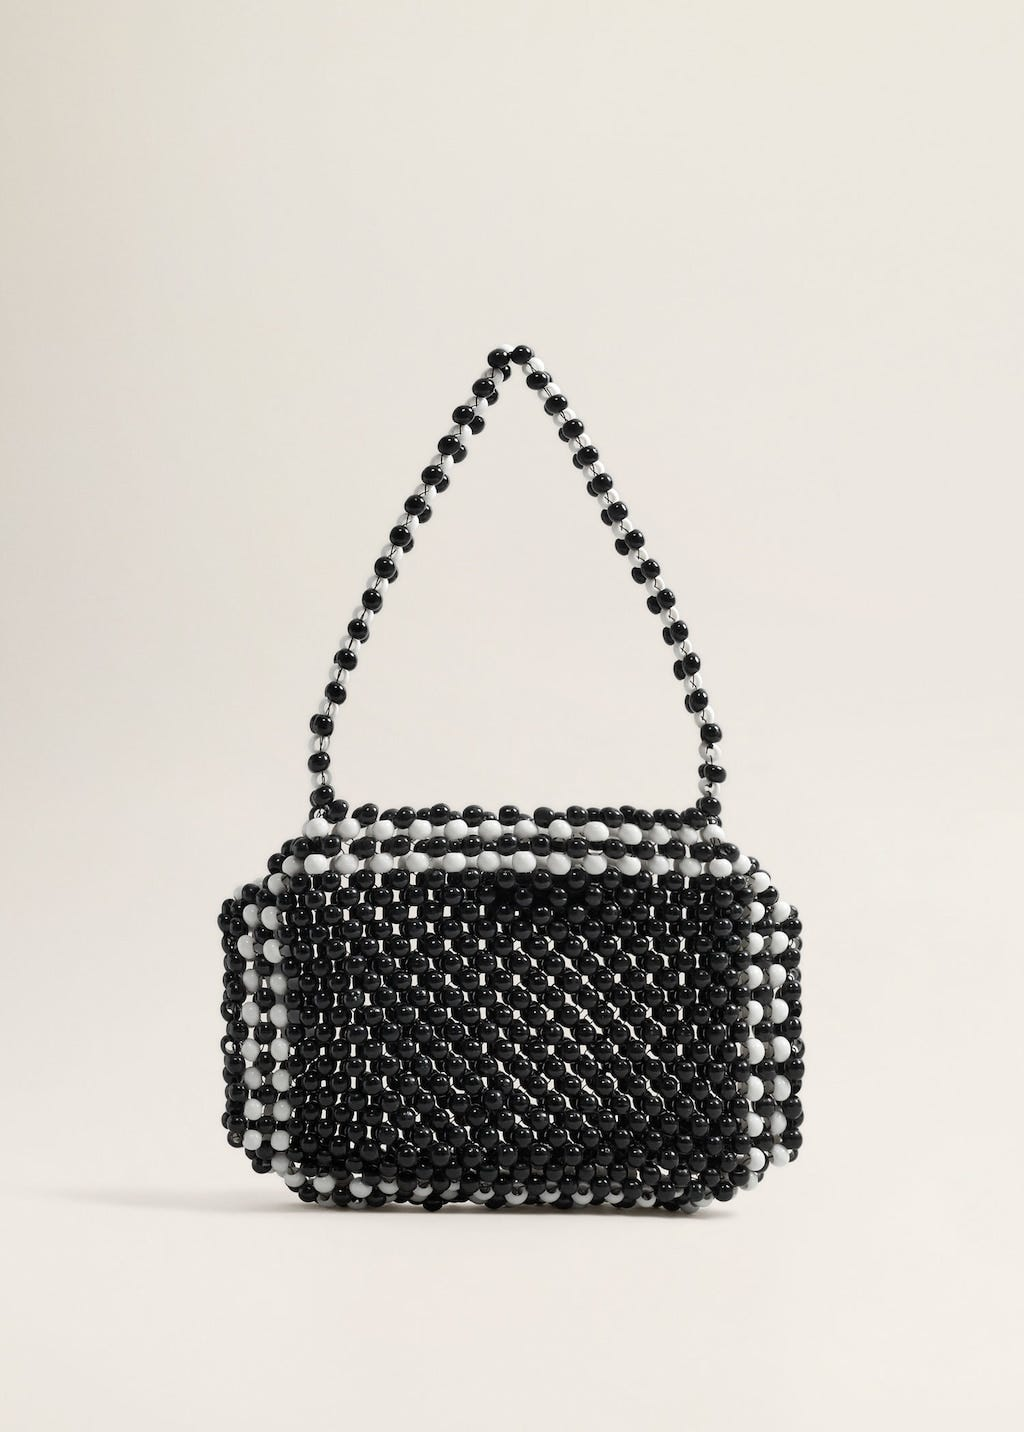 f91829165e6 Beaded And Pearl Embellished Handbag Trend For 2018